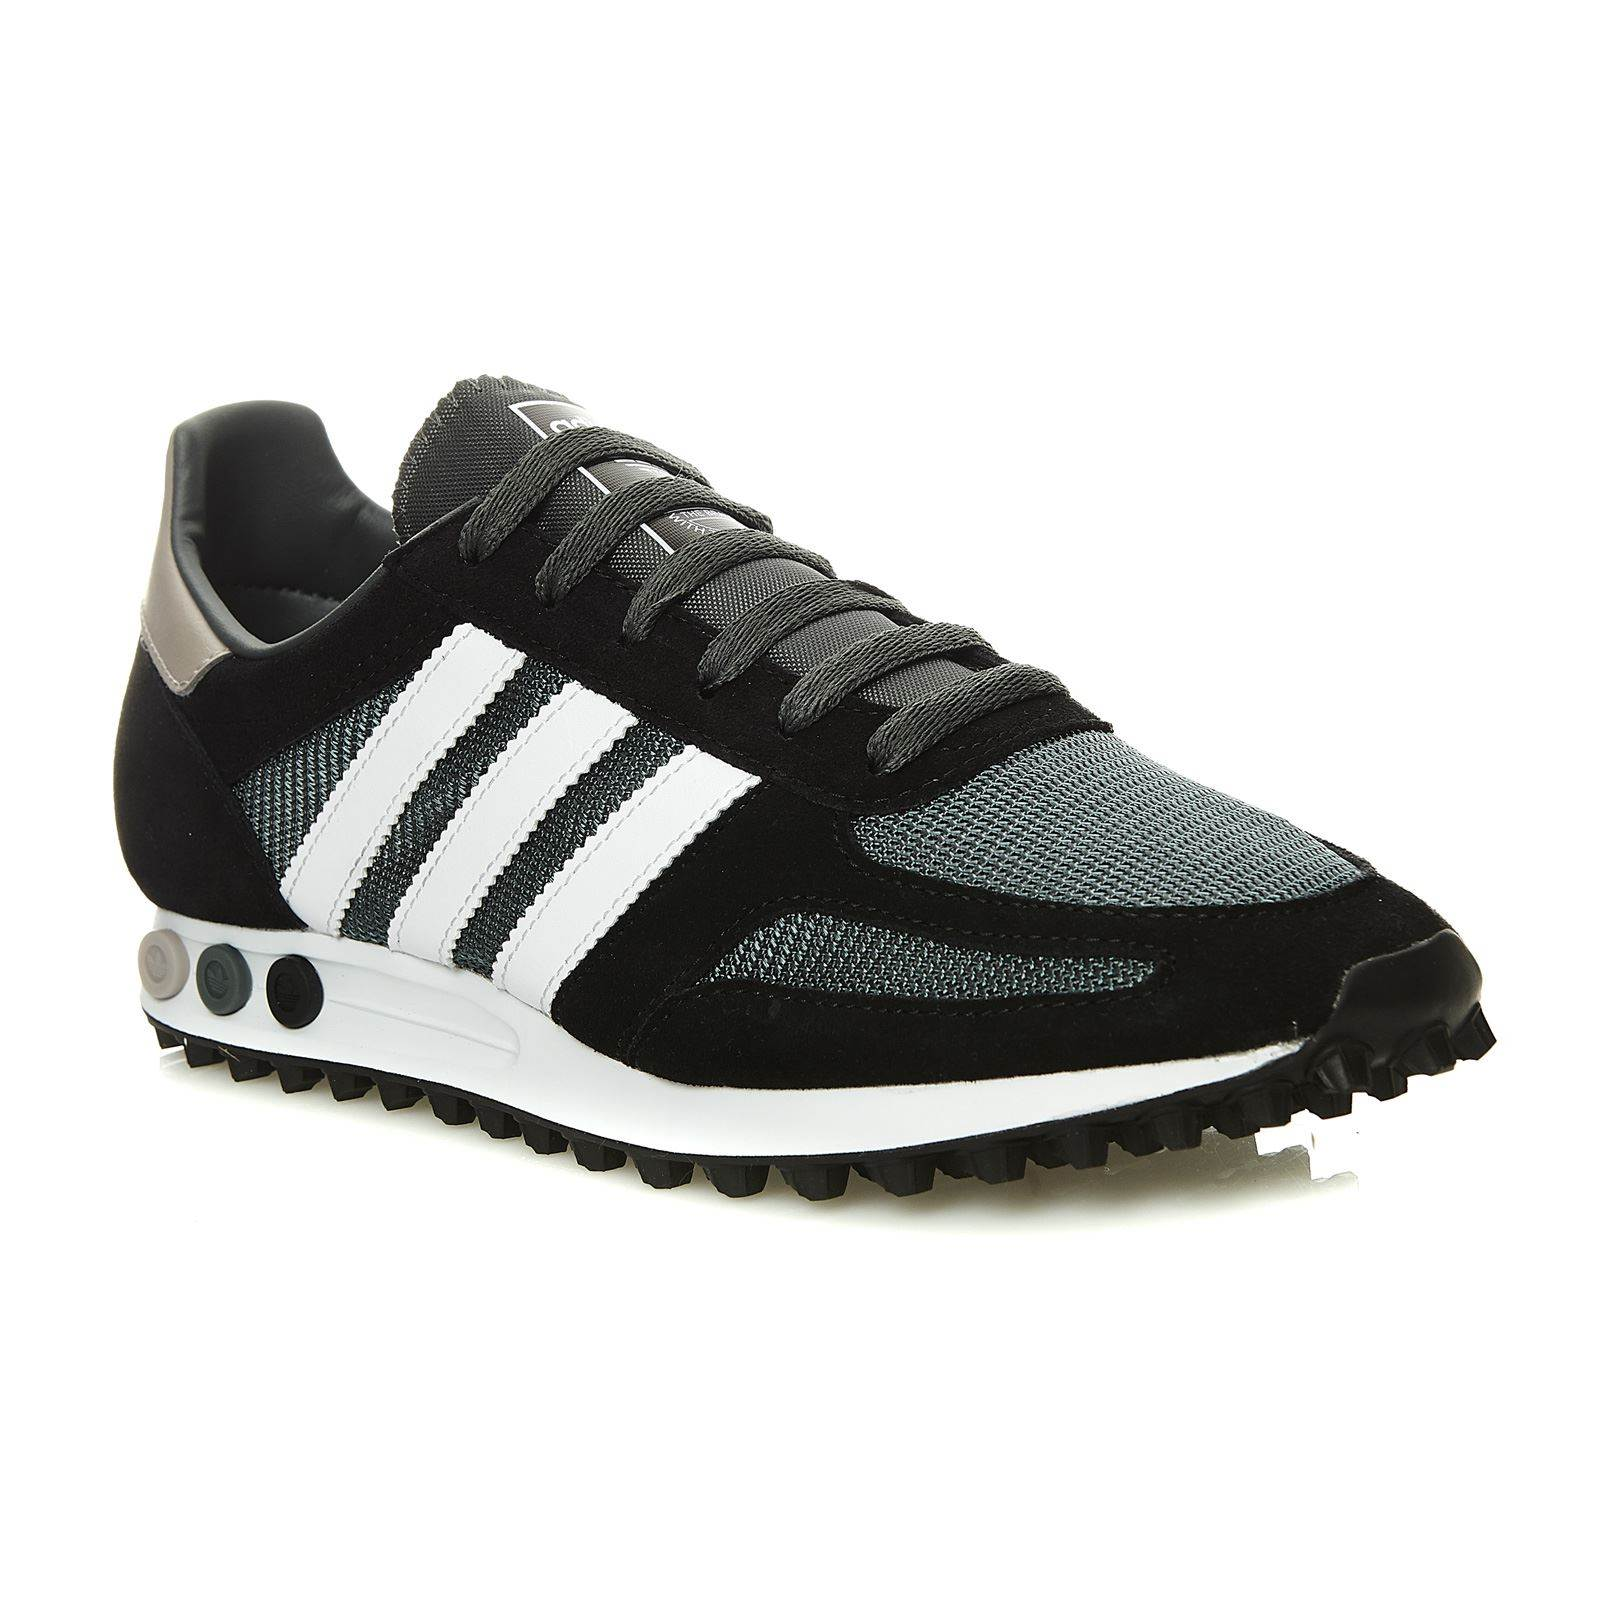 Adidas La Trainer baskets